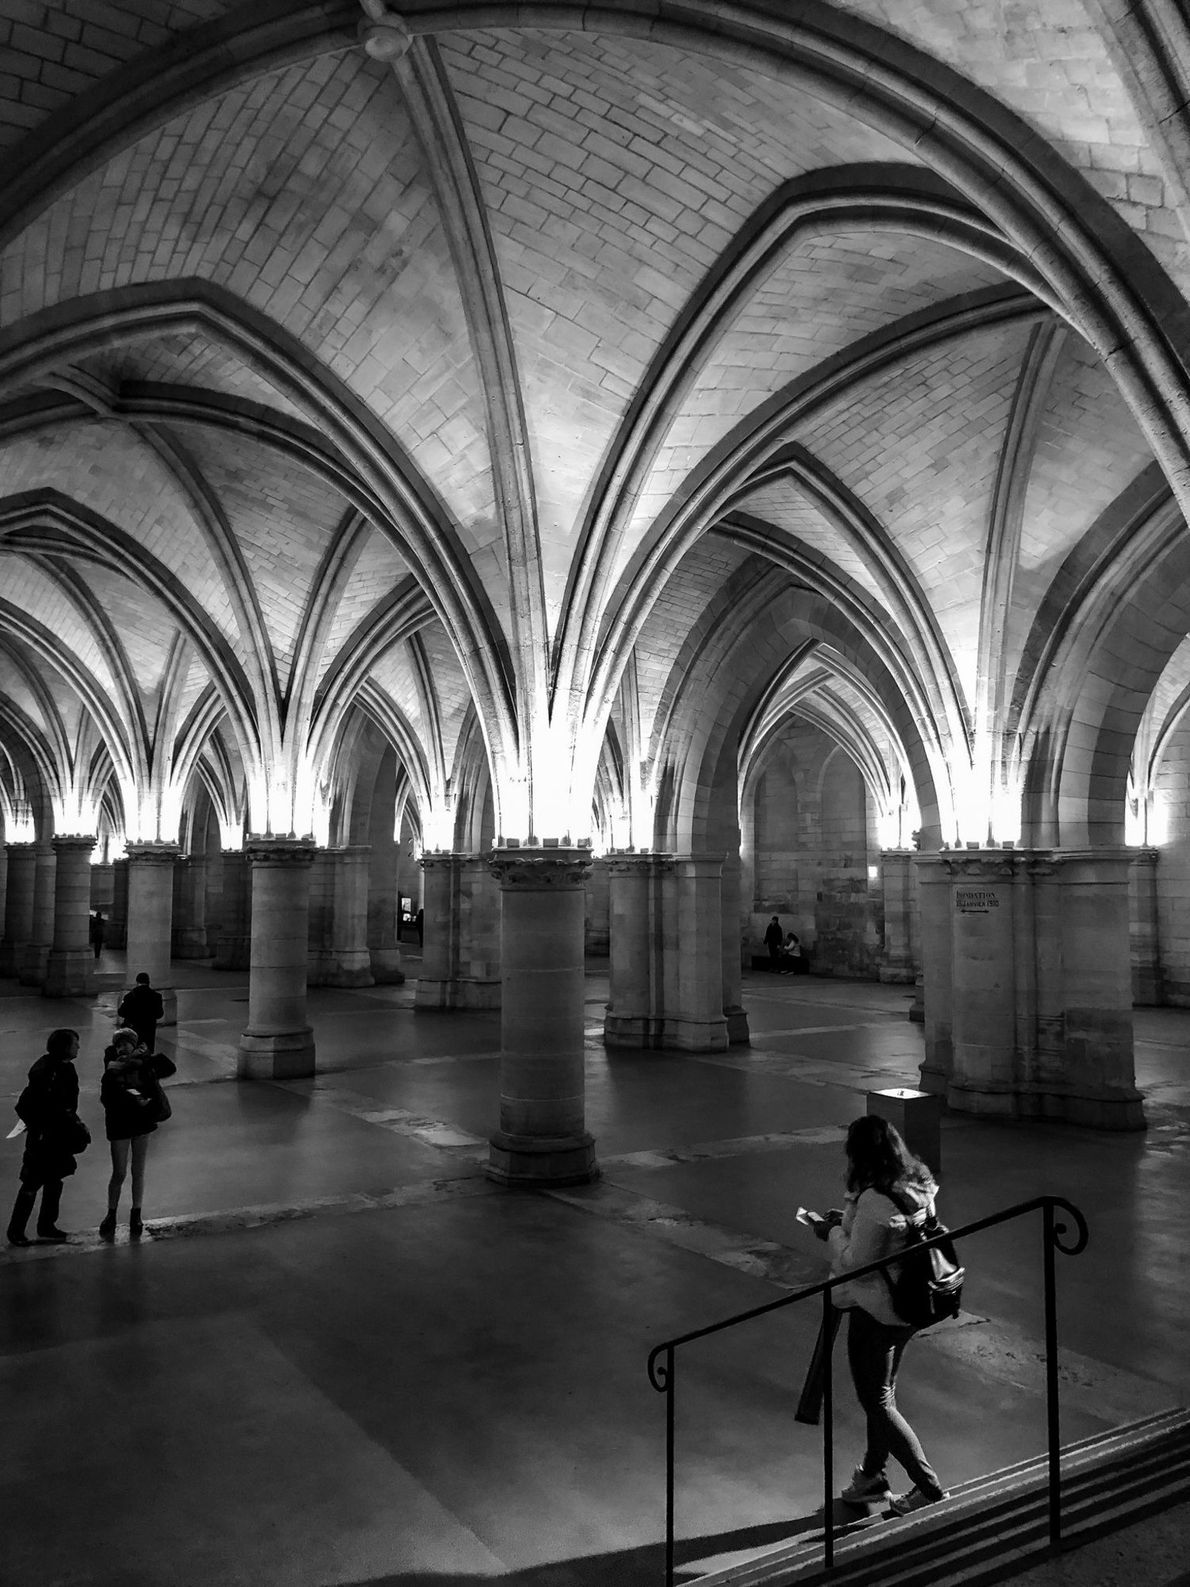 The Kings of France left medieval palace Conciergerie at the end of the 14th century and ...